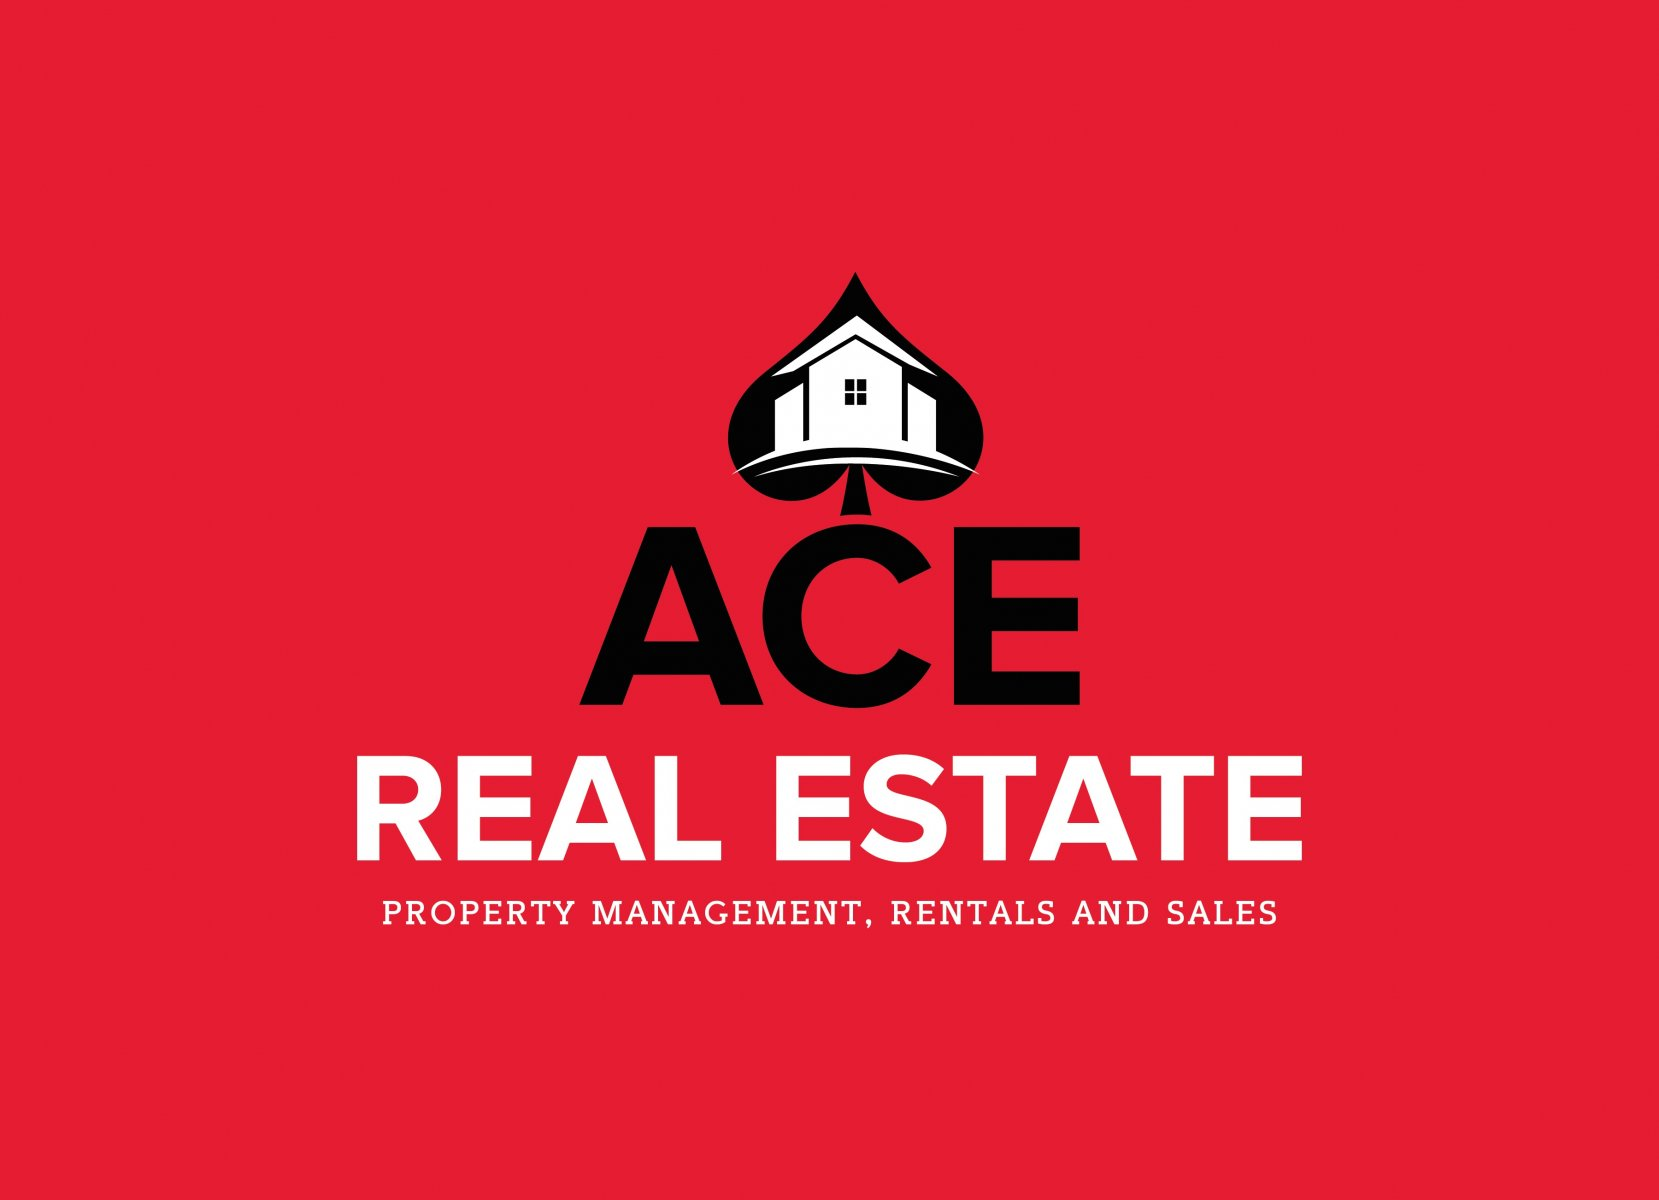 Ace Real Estate logo